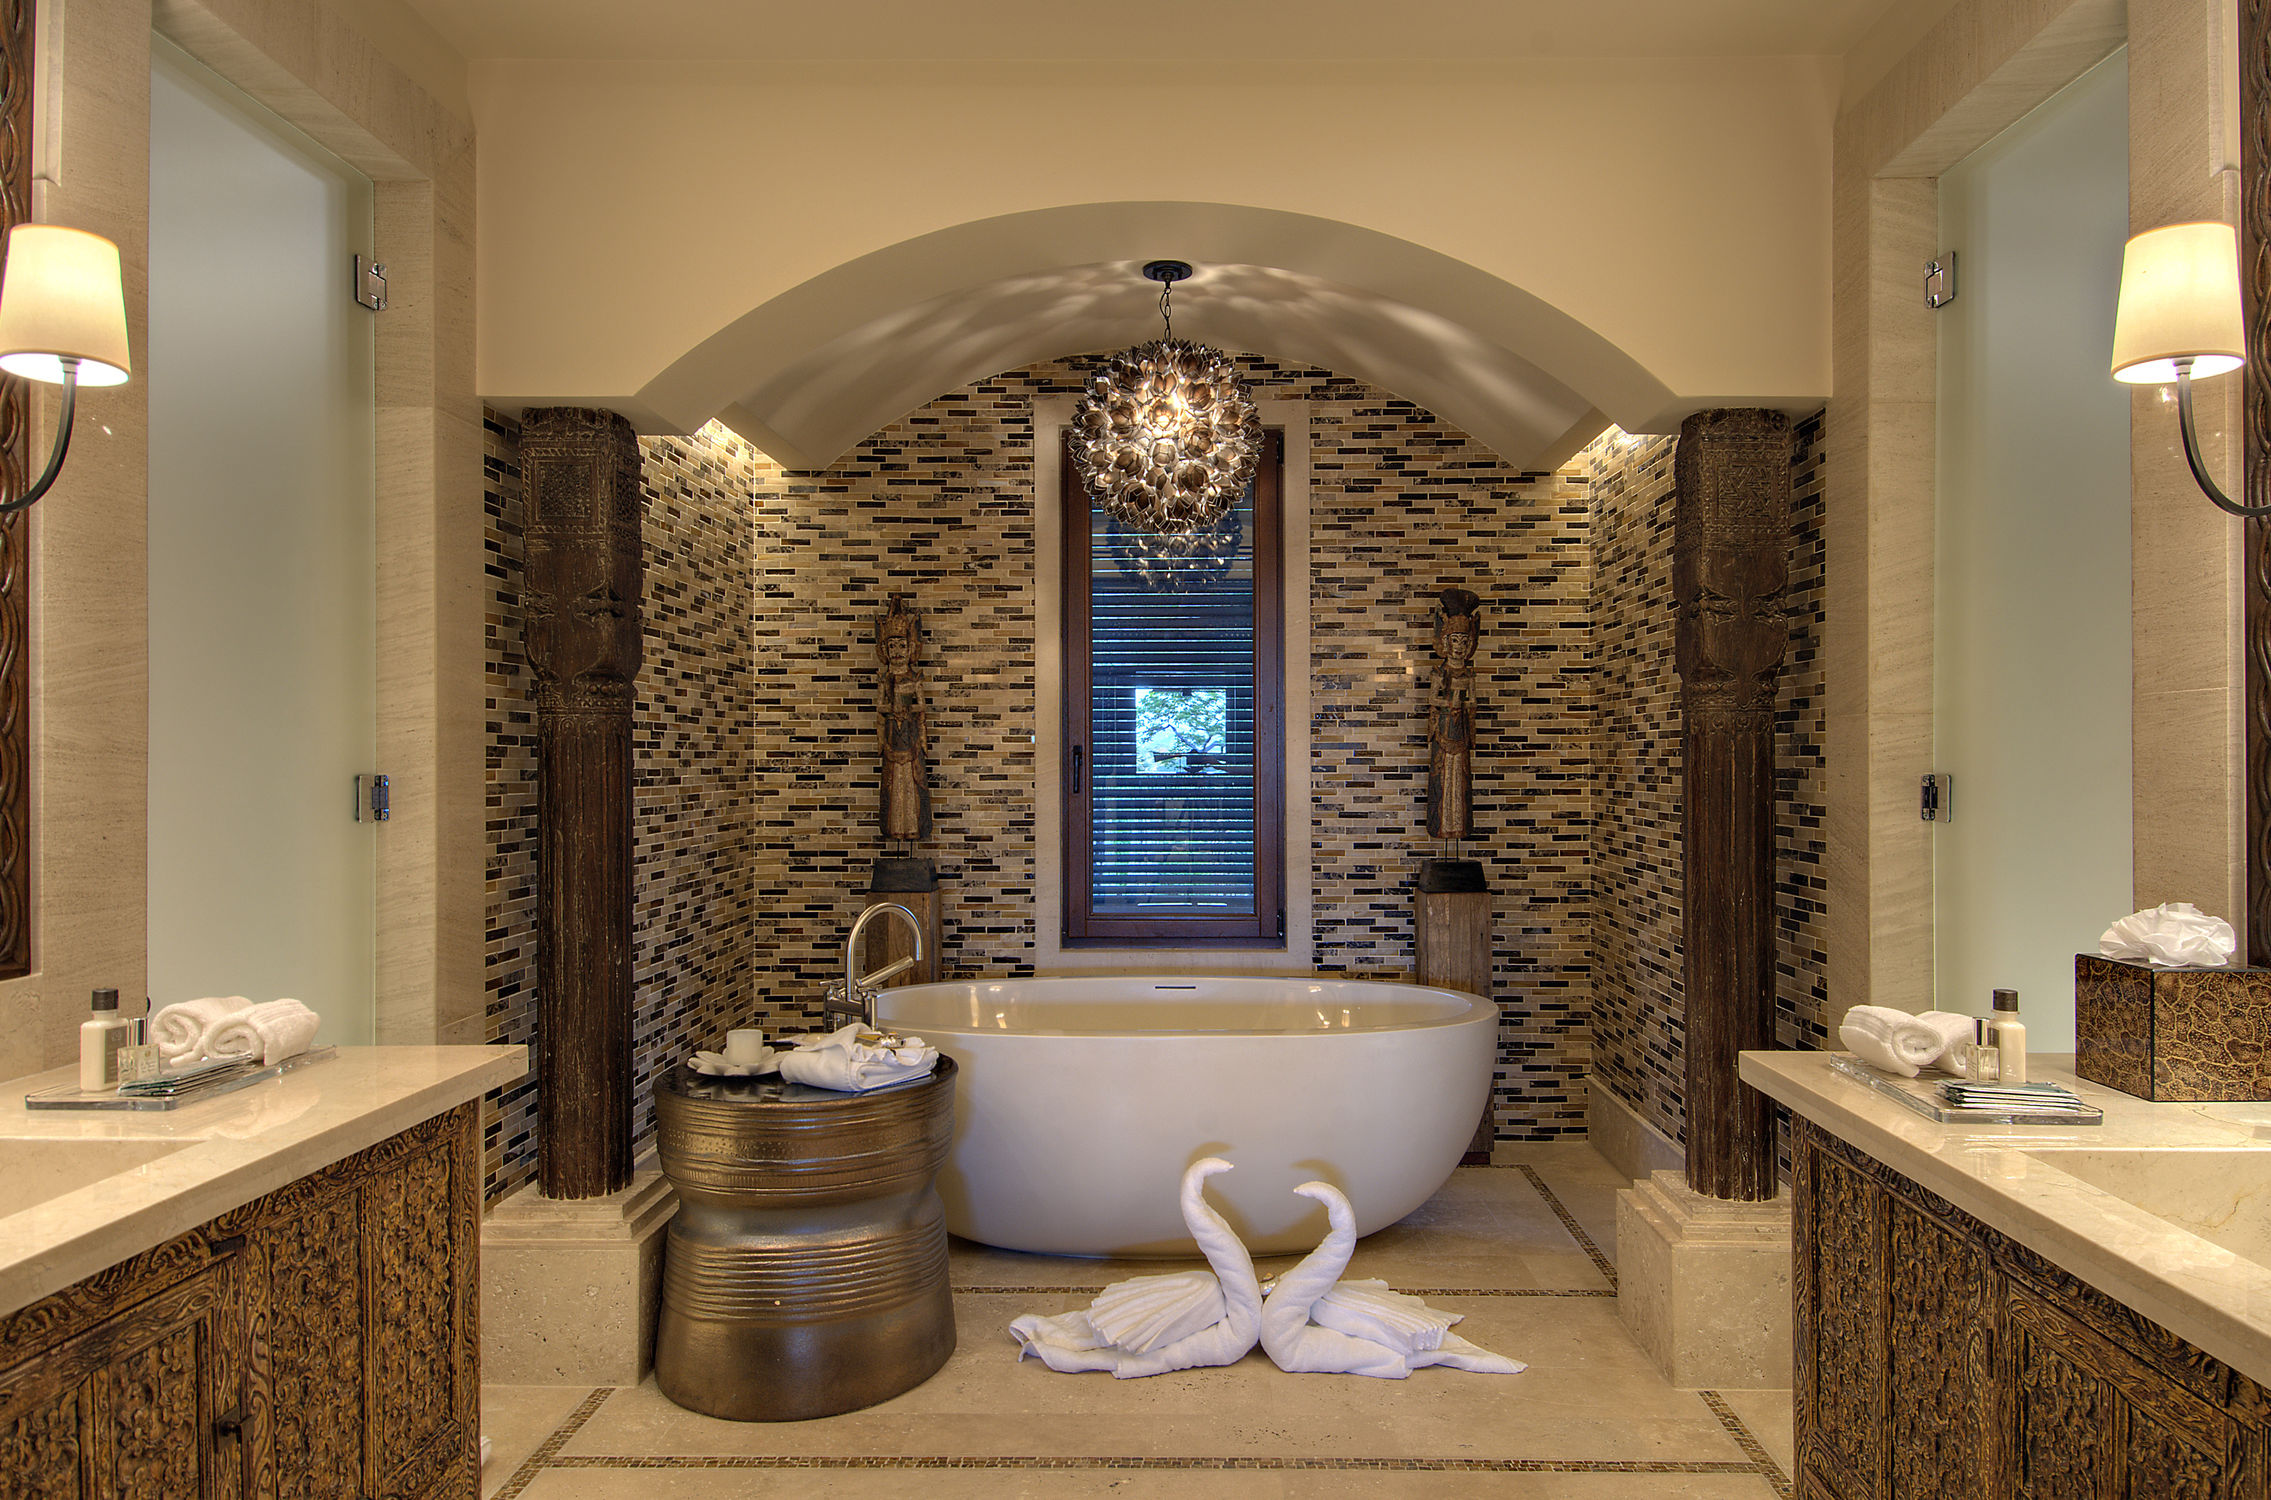 Bathroom Designs Of 28 Amazing Pictures And Ideas Of The Best Natural Stone